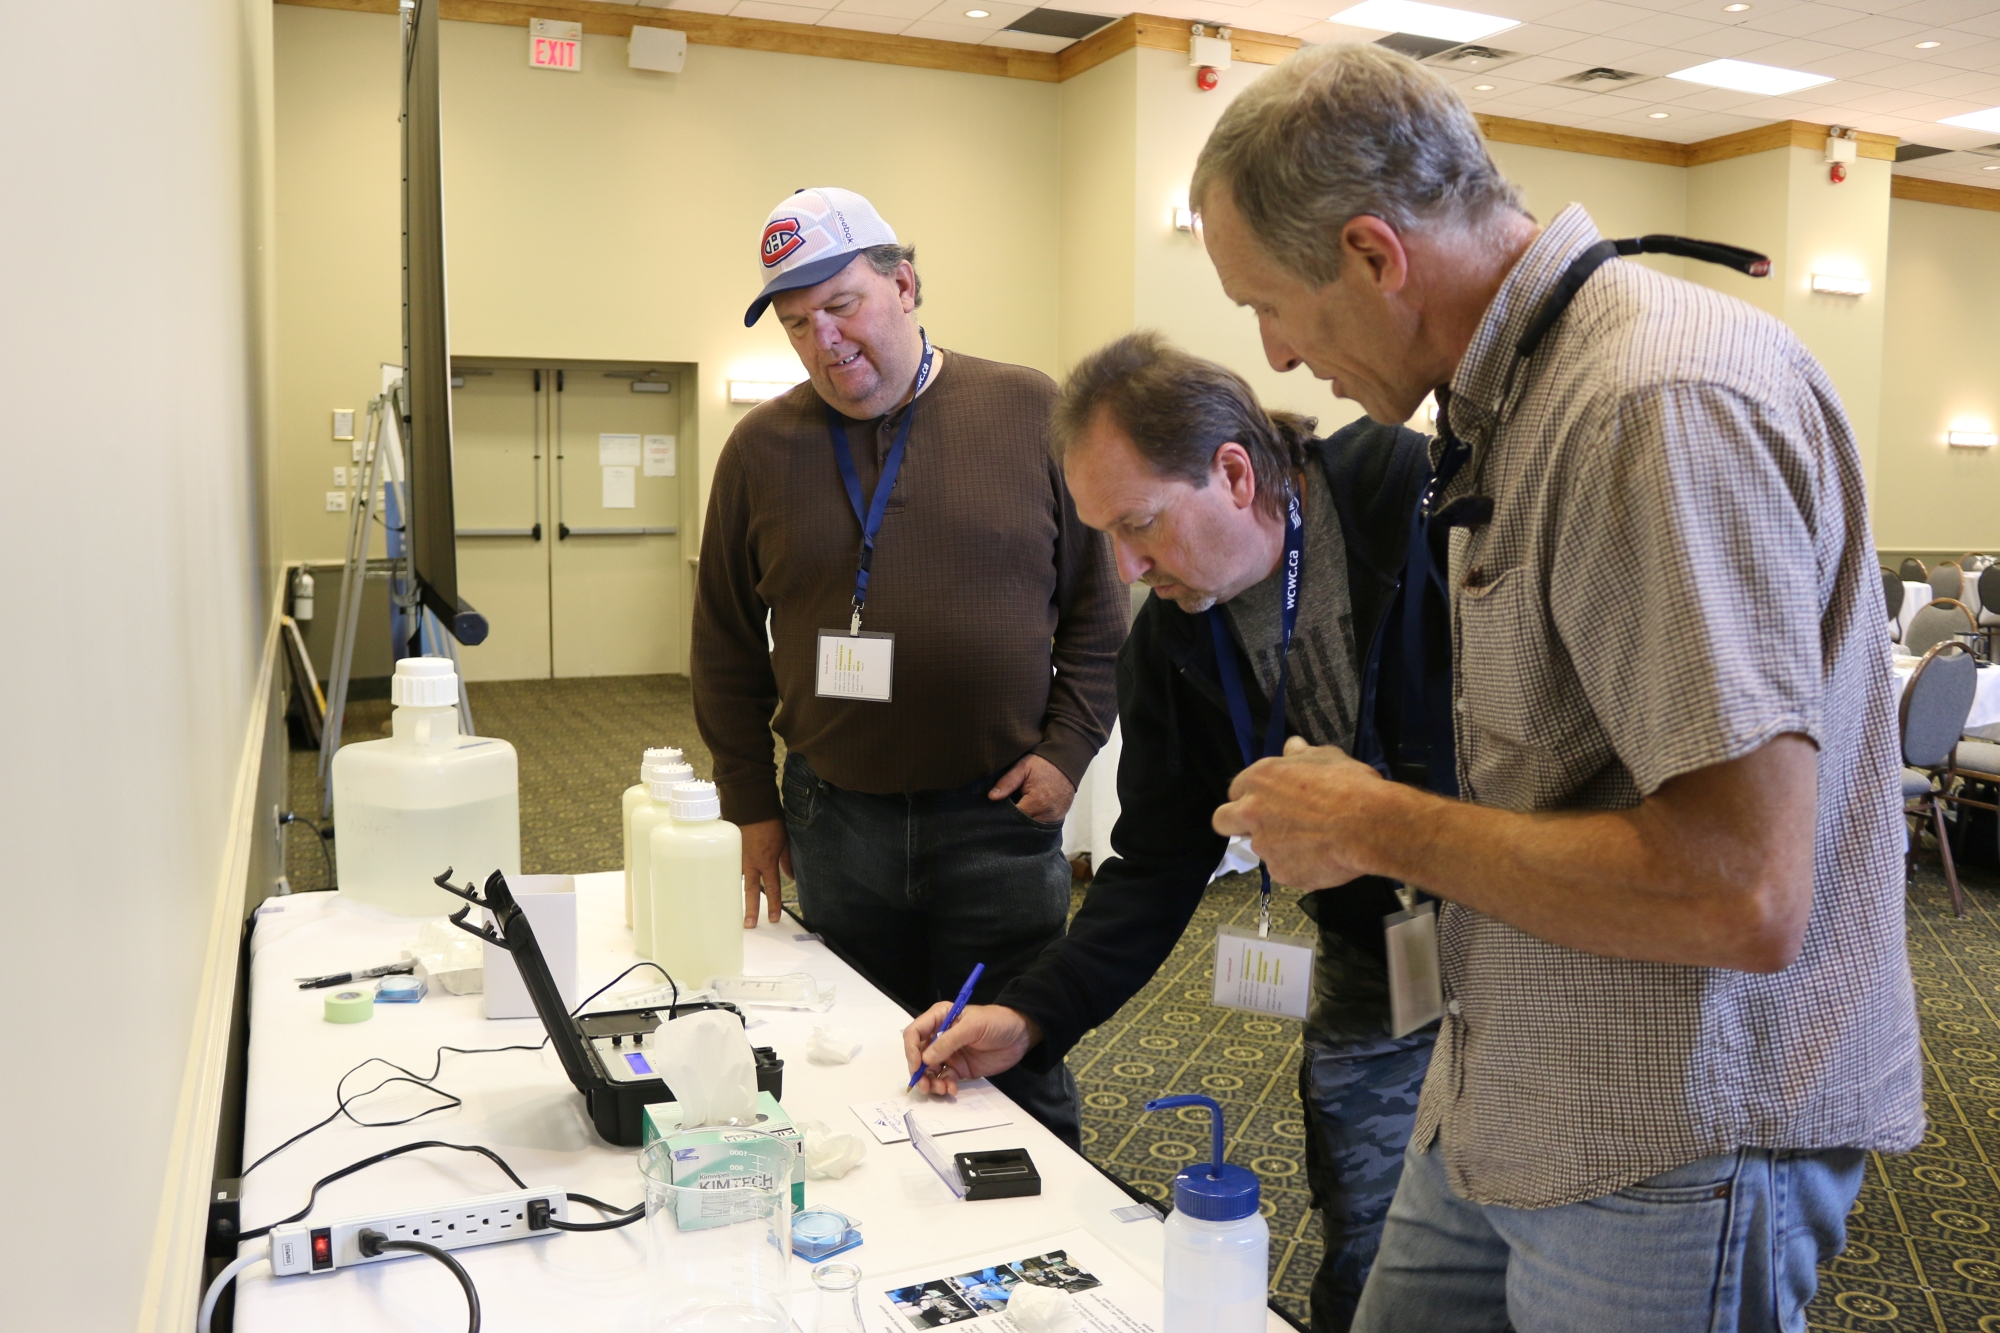 WCWC Is Pleased To Be Hosting a Small Systems Hands-on Workshop